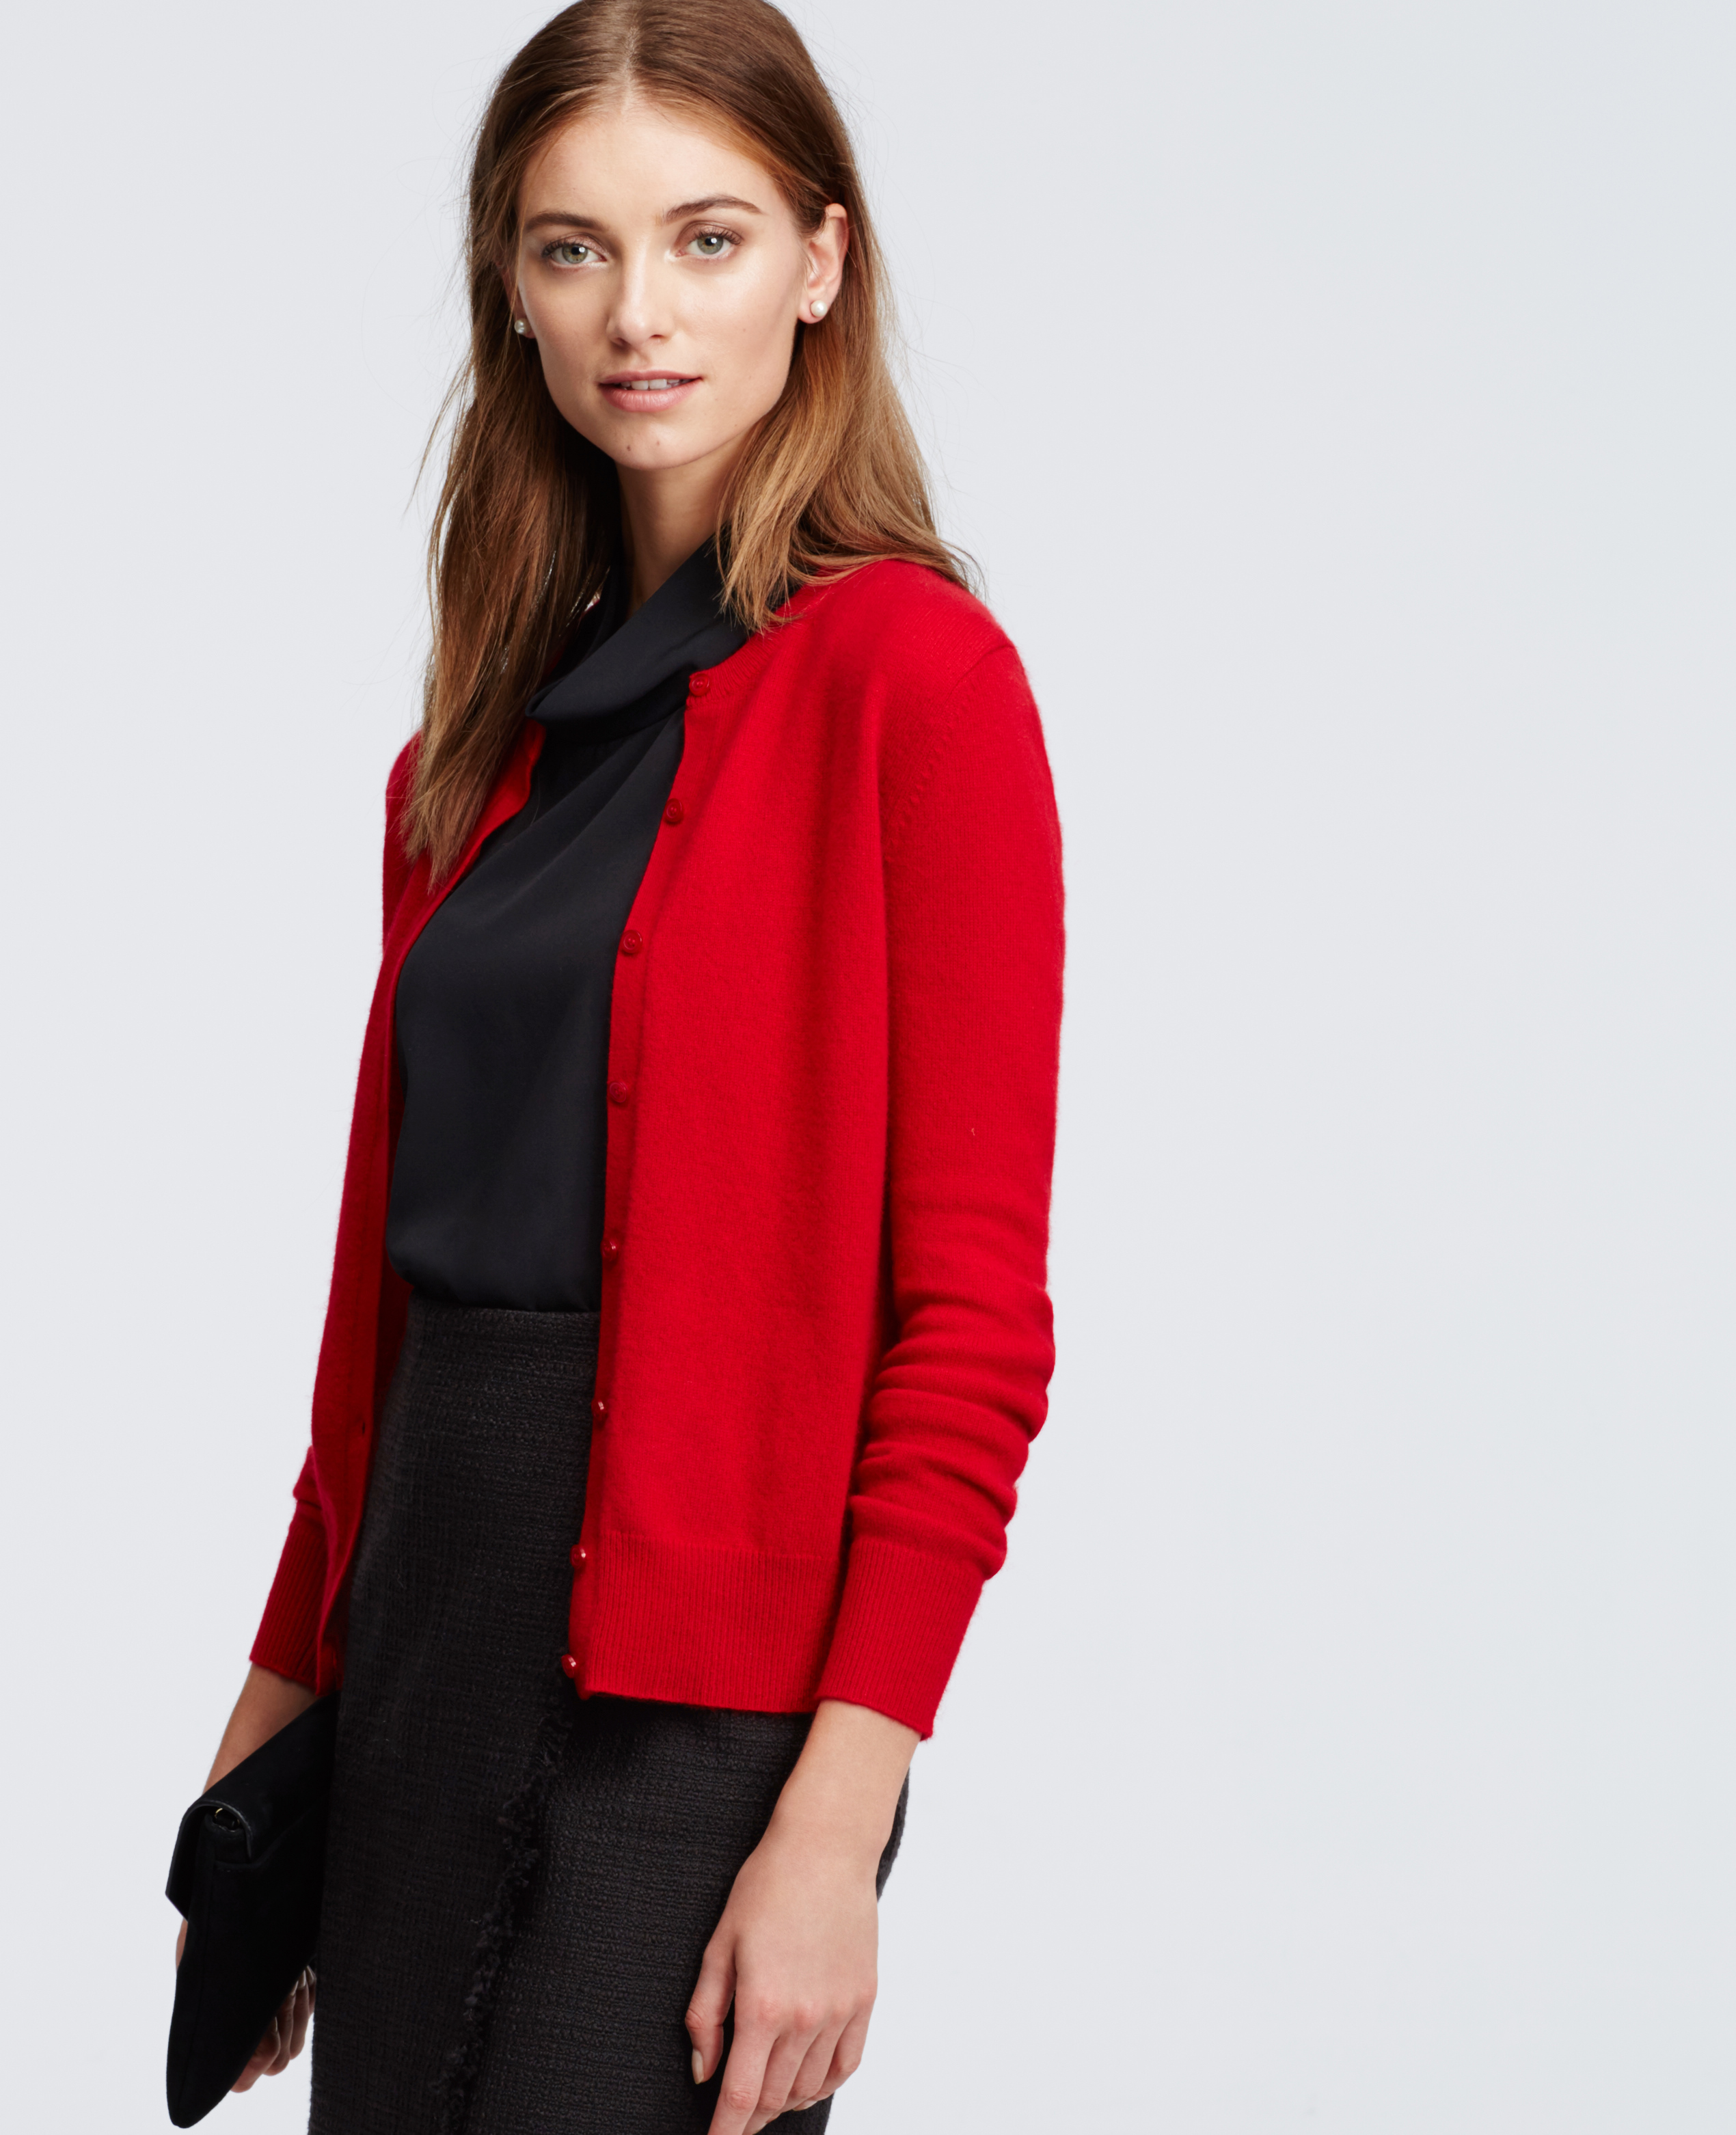 Lyst - Ann Taylor Cashmere Crew Neck Cardigan in Red f0bdfdcc4